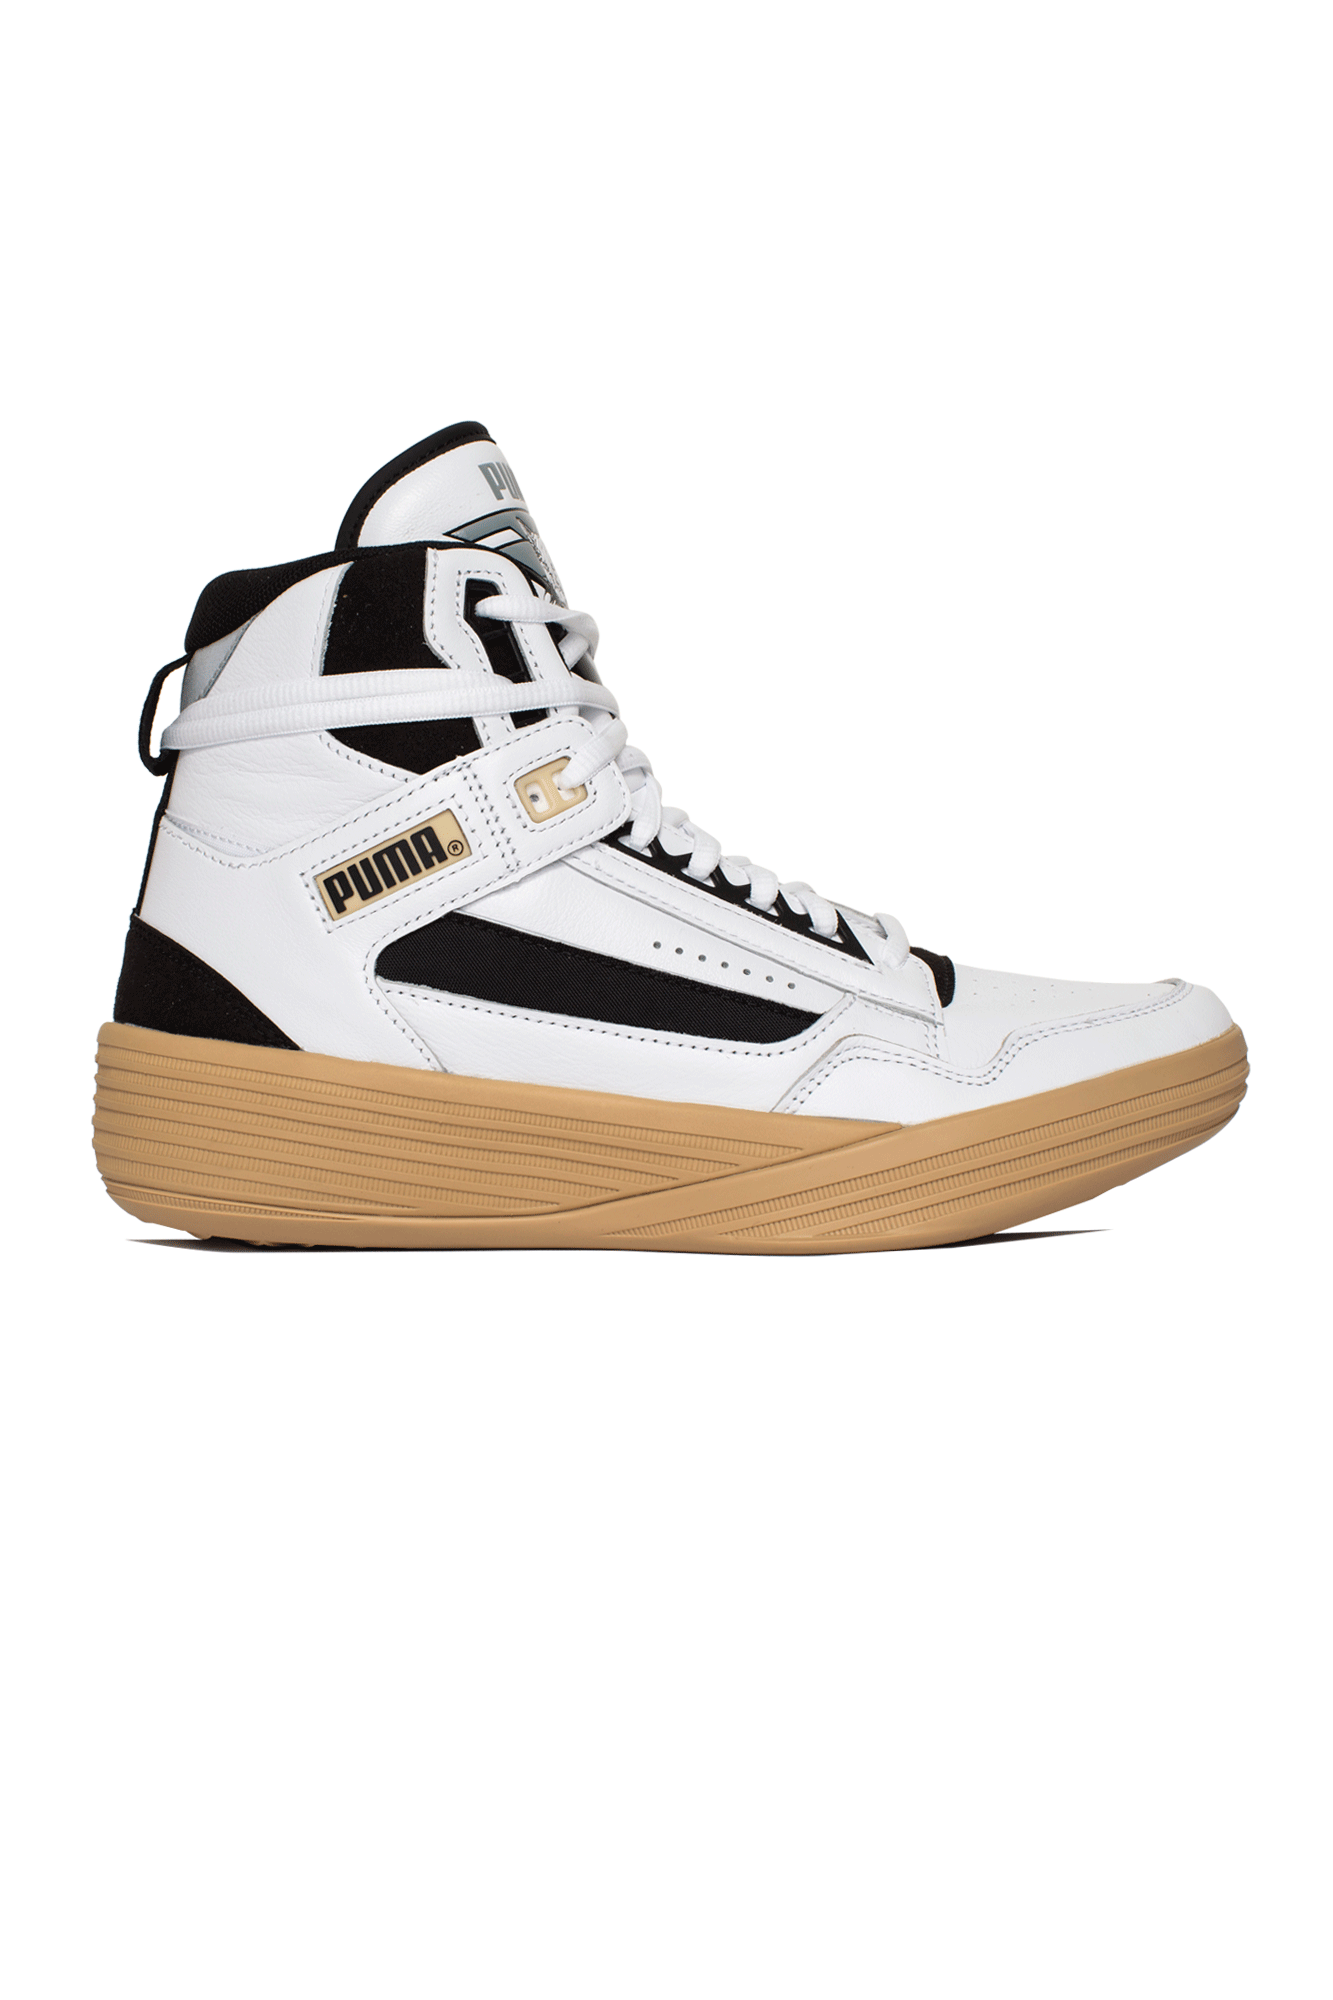 Clyde All-Pro Kuzma Mid White